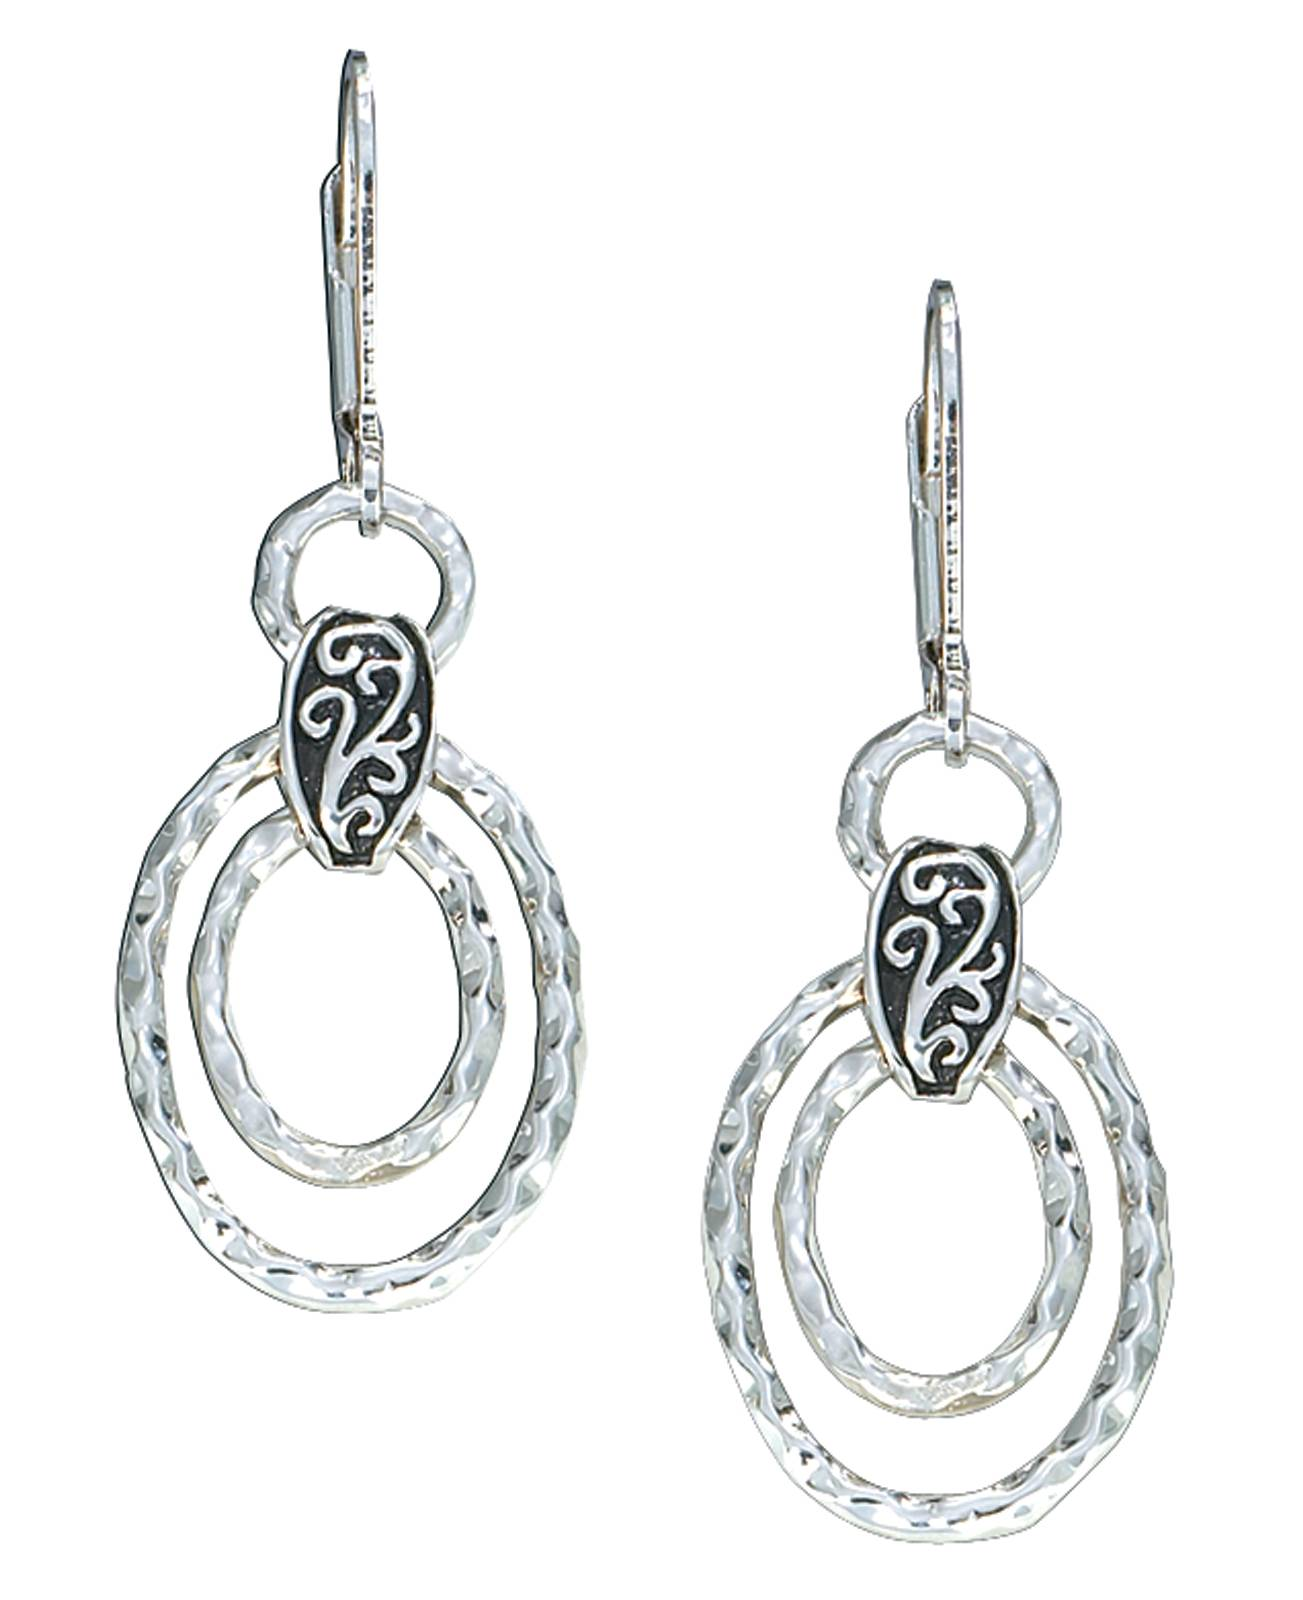 Montana Silversmiths Hammered Ovals Dangle Earrings